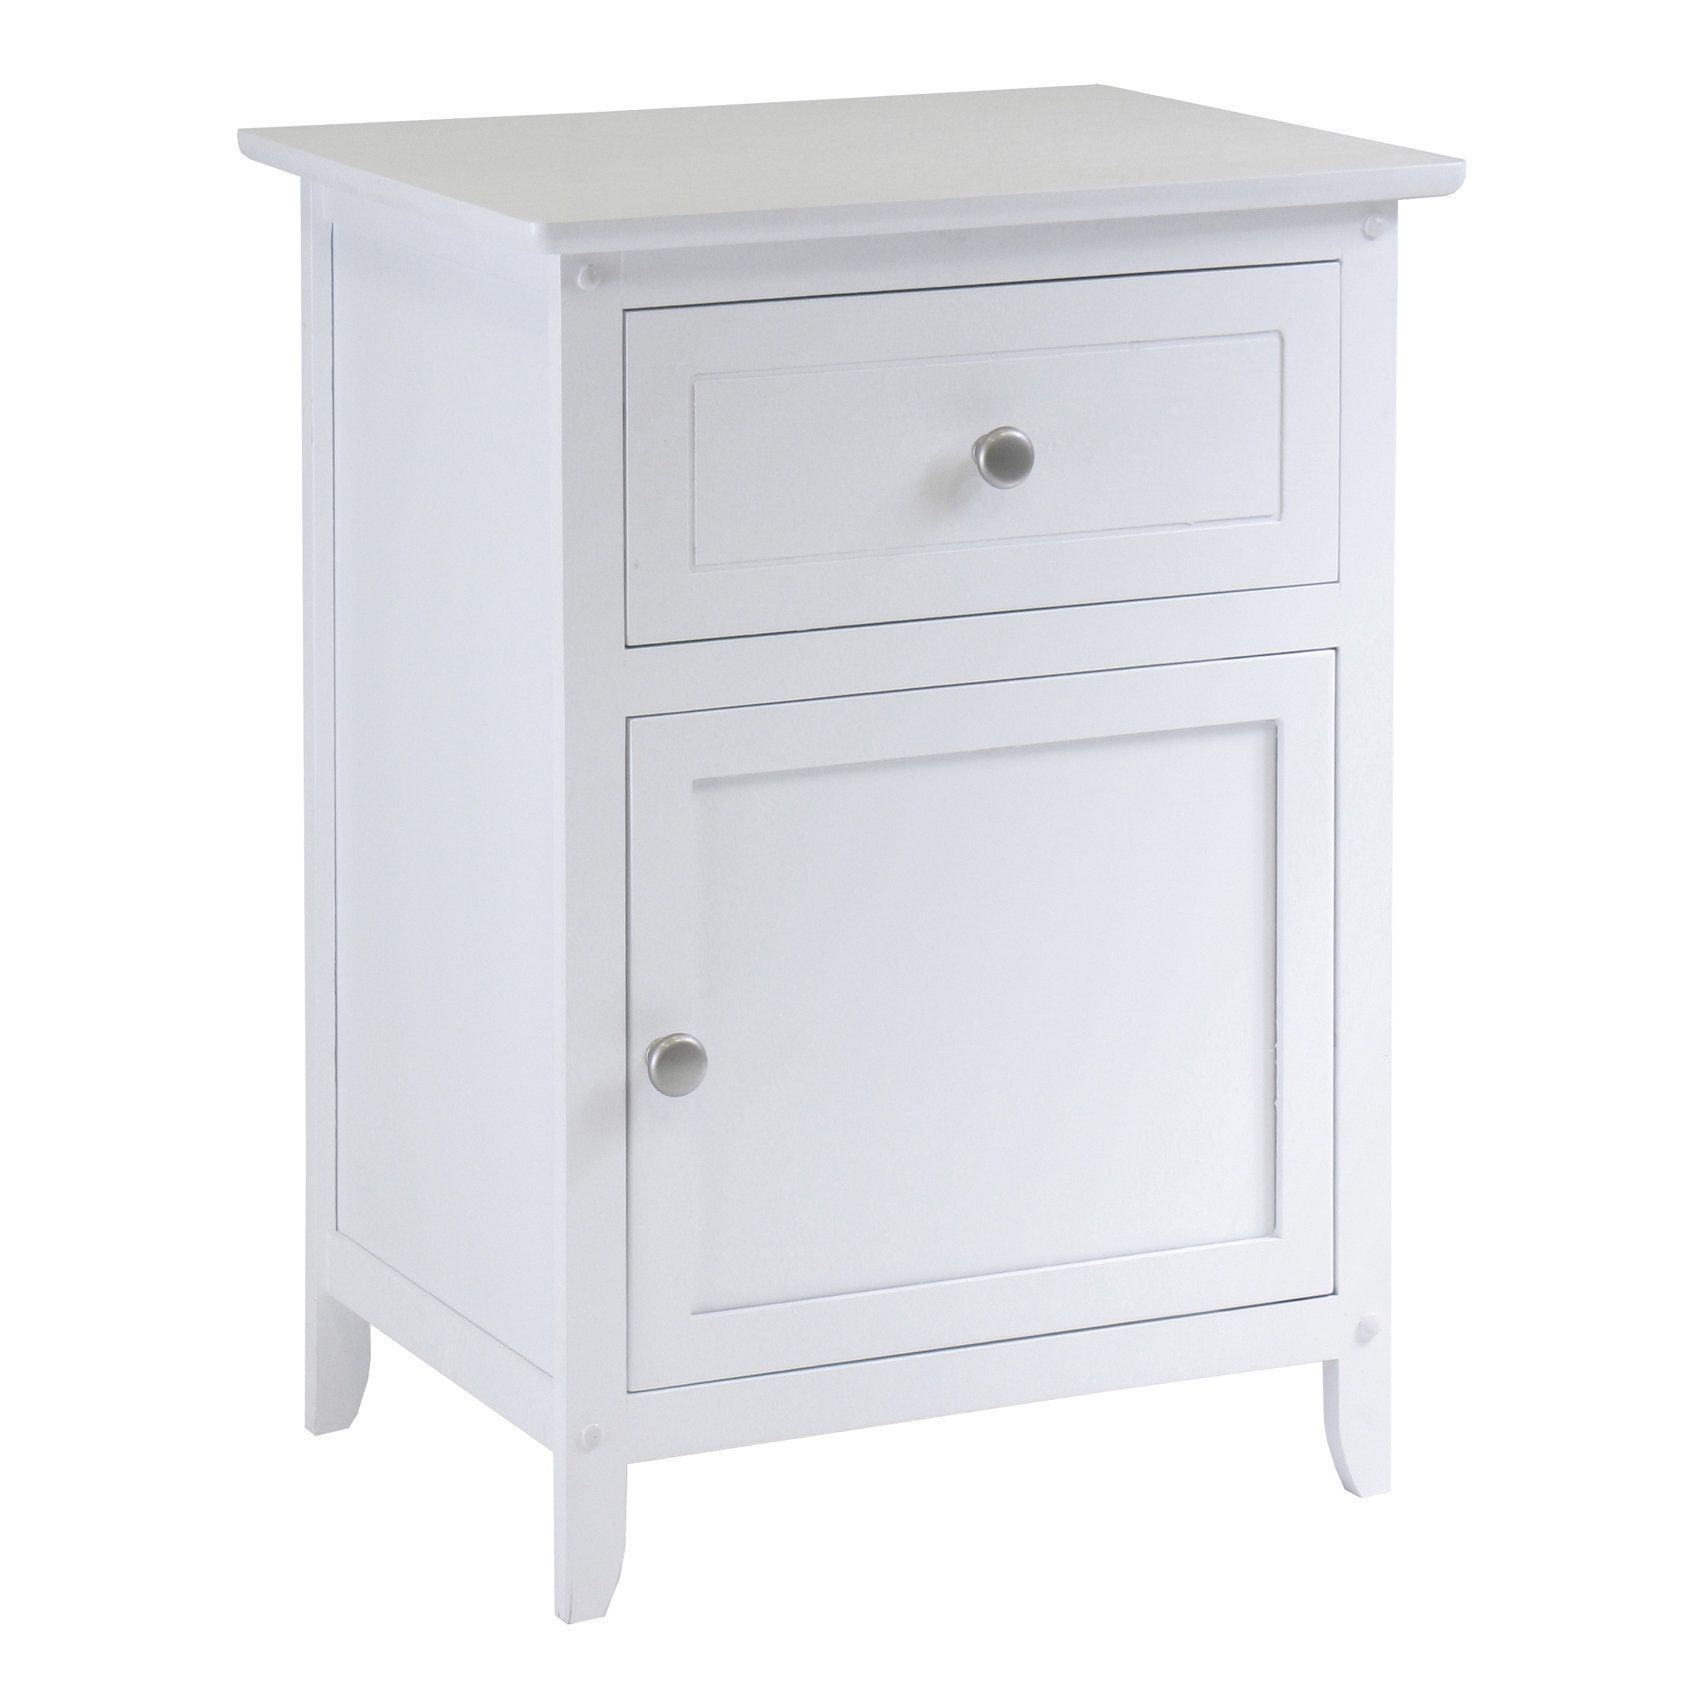 winsome eugene night stand accent table with drawer cabinet espresso products pier white wicker furniture height end usb charger bathroom heater waterproof cover outdoor